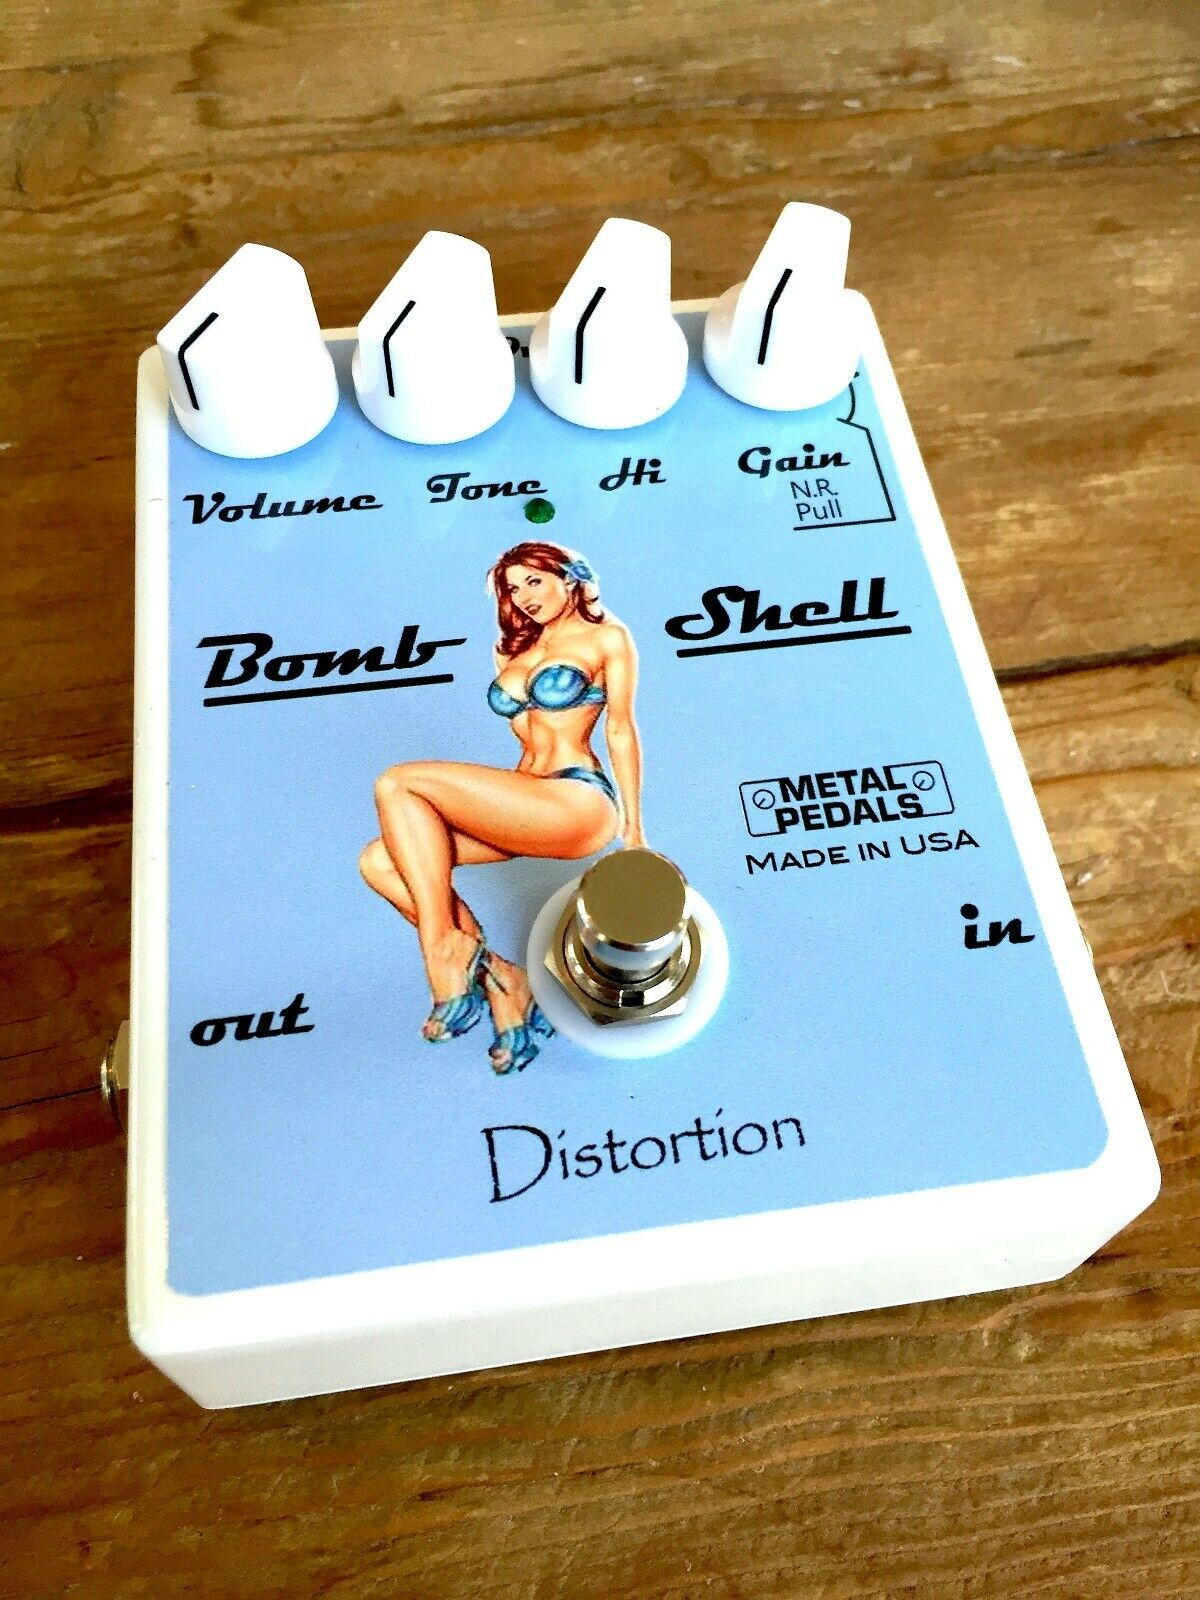 Bomb Shell Verzerrung Pedal overdrive Pedal Booster Pedal Hand verdrahtet OD Pedal